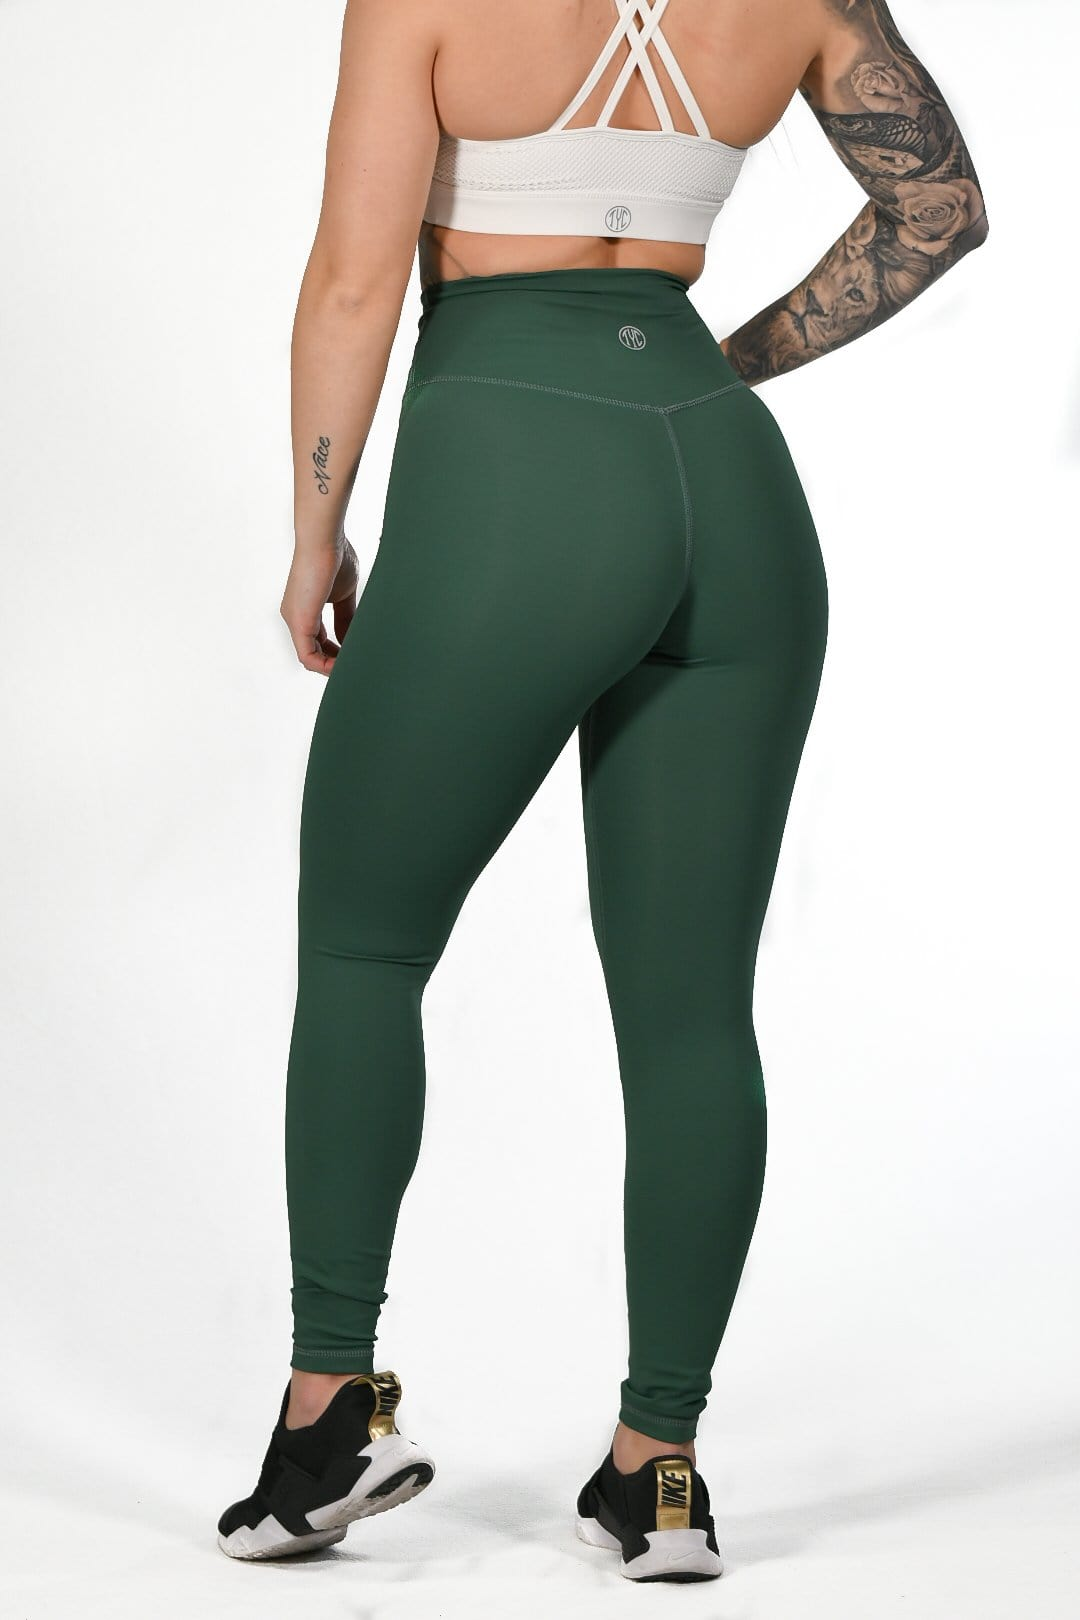 Intensity Classic Leggings- Forest Green